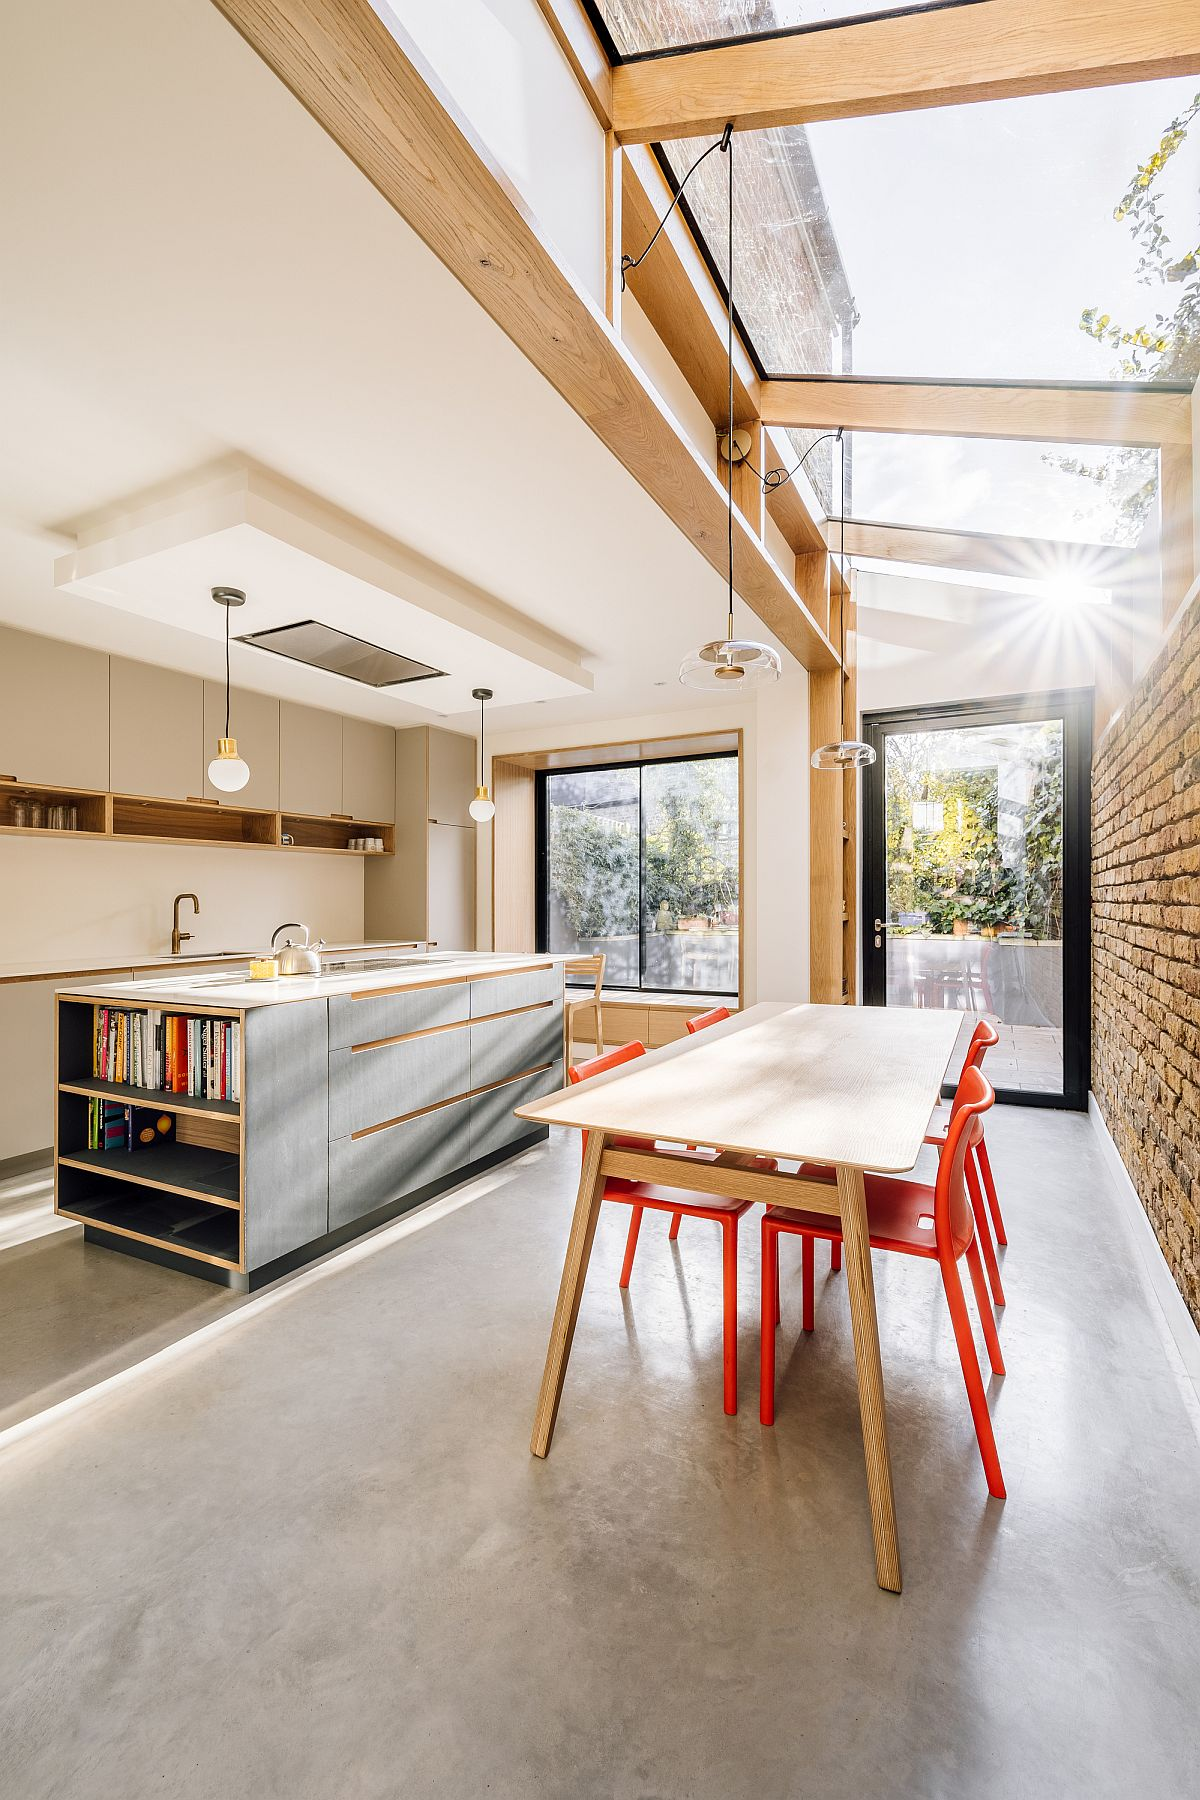 Exquisite modern kitchen with dining space is beautifully lit by the large sky light above